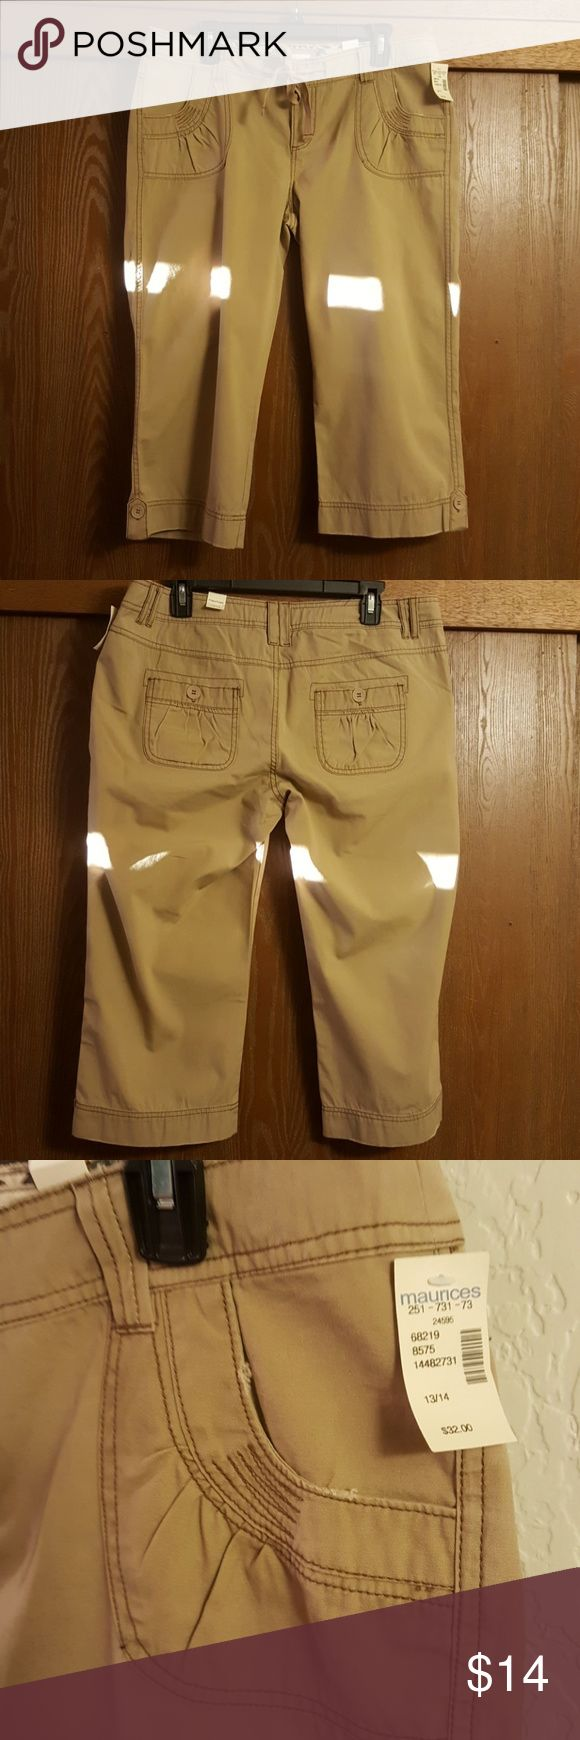 Maurices Khaki Capris Size 13/14 NWT NWT Size 13/14.  Khaki Capris with button, zipper and tie front.  2 front pockets and 2 back pockets.   Button tabs closures at the hems.  Gathered front pocket detail.  Waist lying flat is 18.5 inches. Maurices Pants Capris